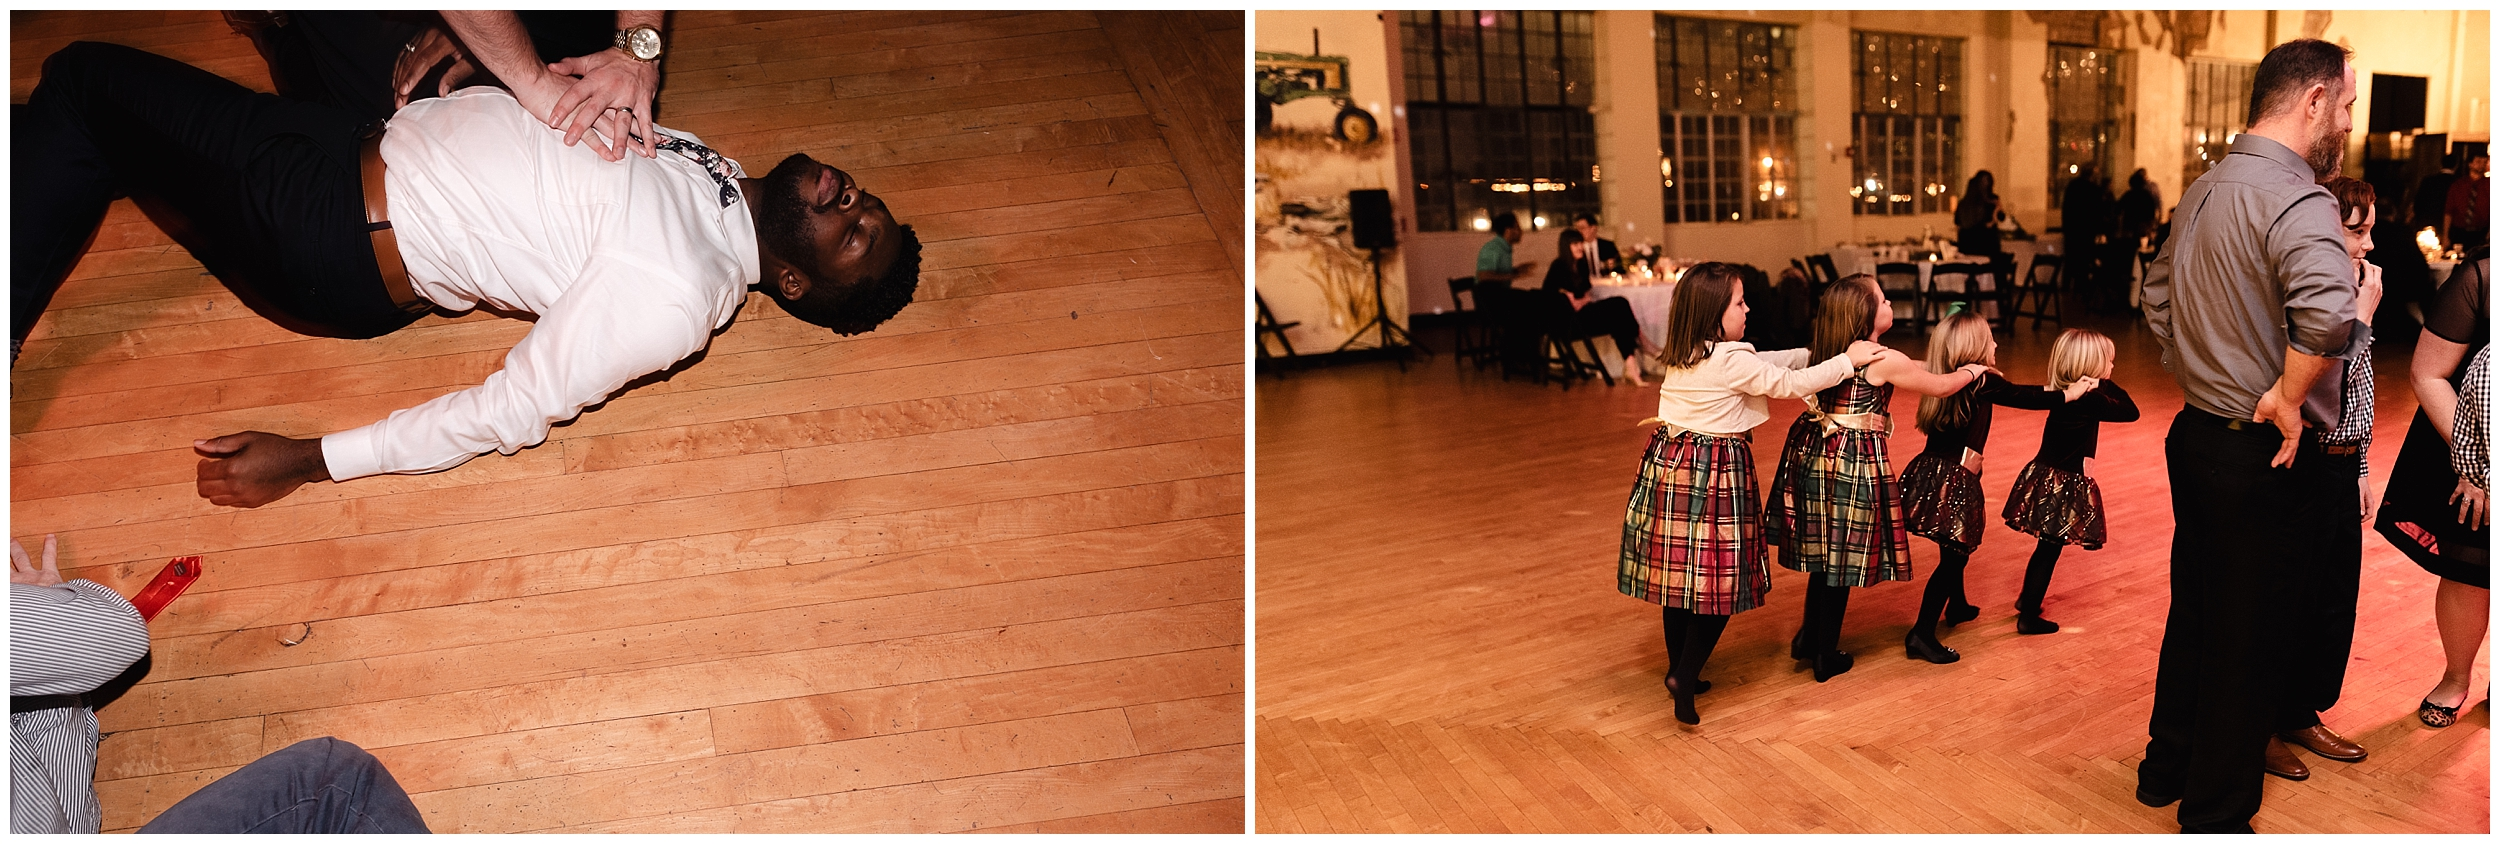 oklahoma wedding photographer reception family friends hugs congratulations best wishes toasts dancing party